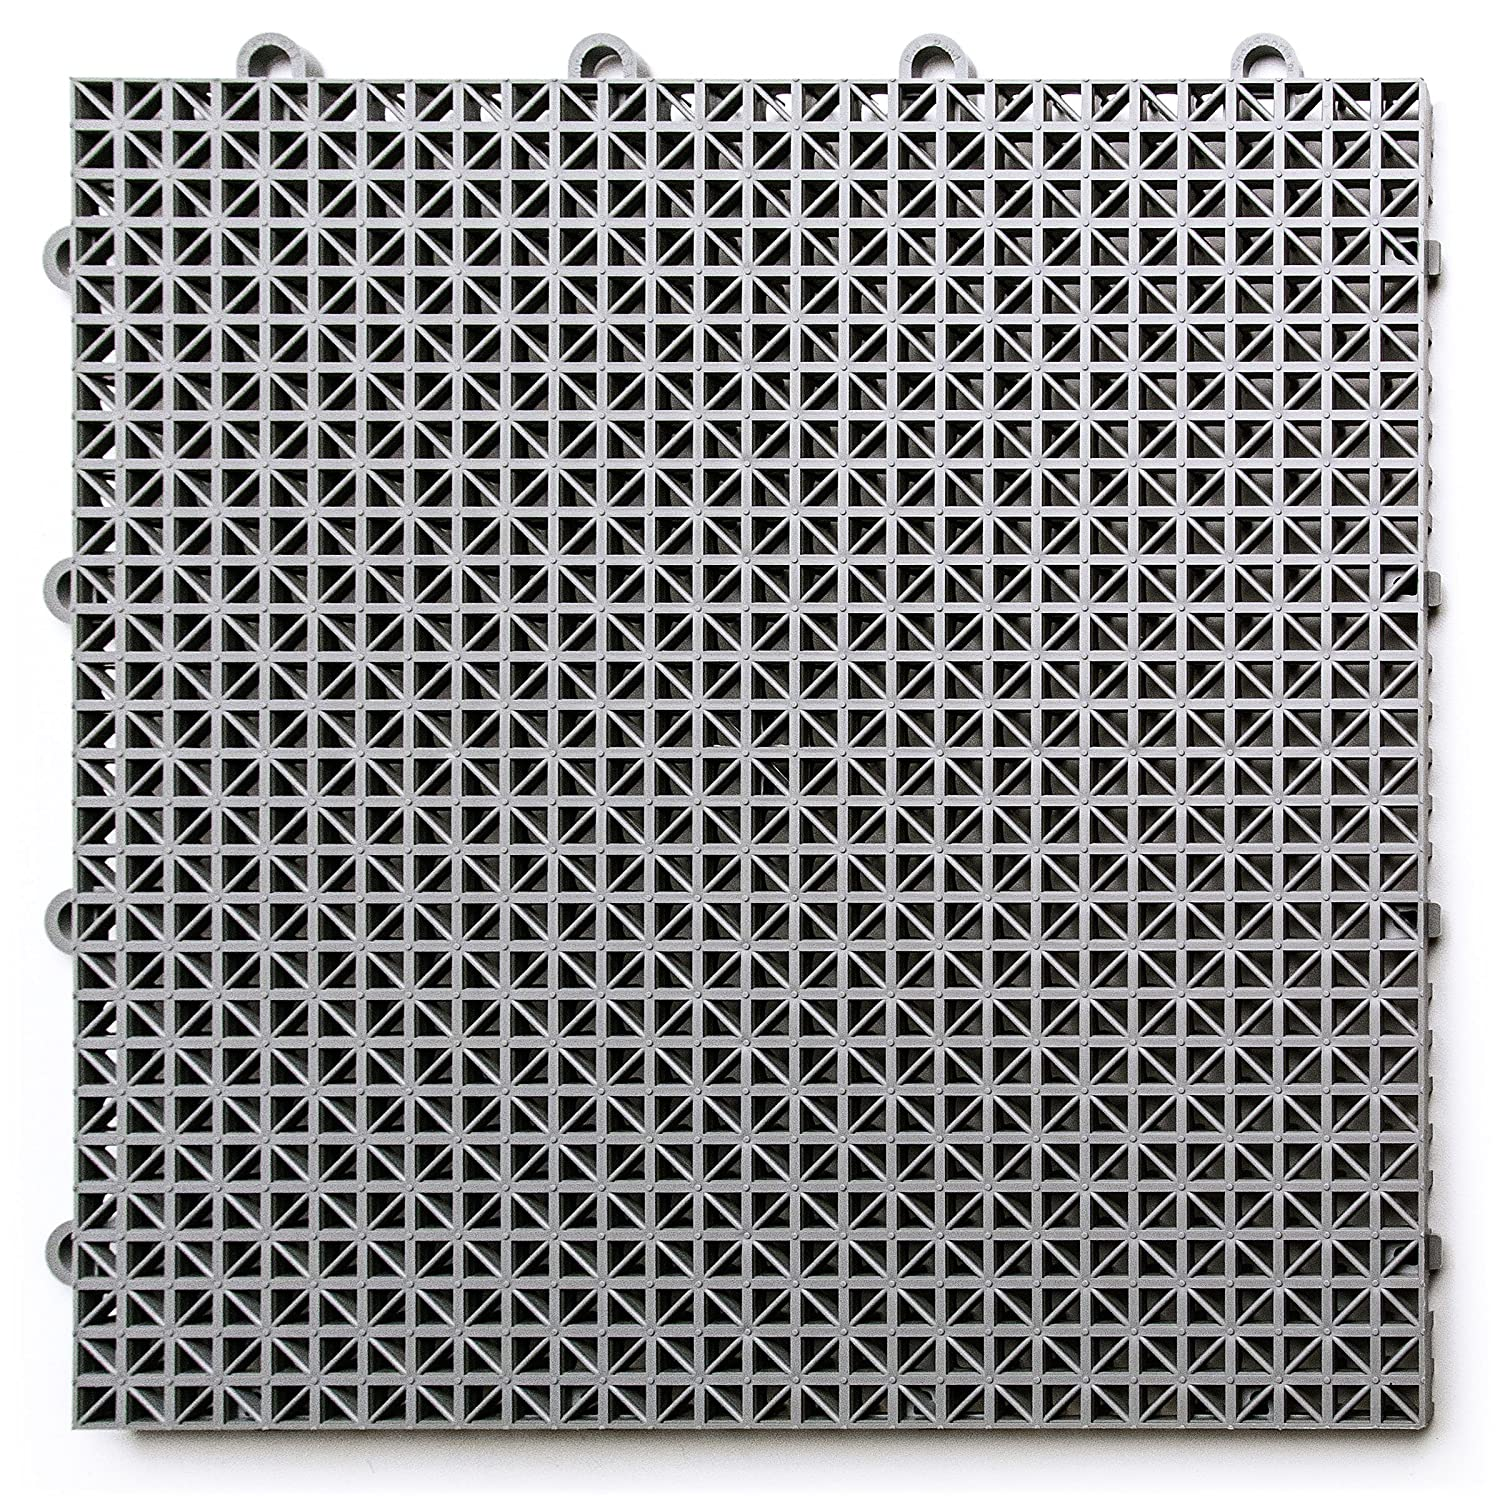 DuraGrid, Gray DT24GRAY Outdoor Modular Interlocking Multi-Use Deck Tile (24 Pack), 24 Piece